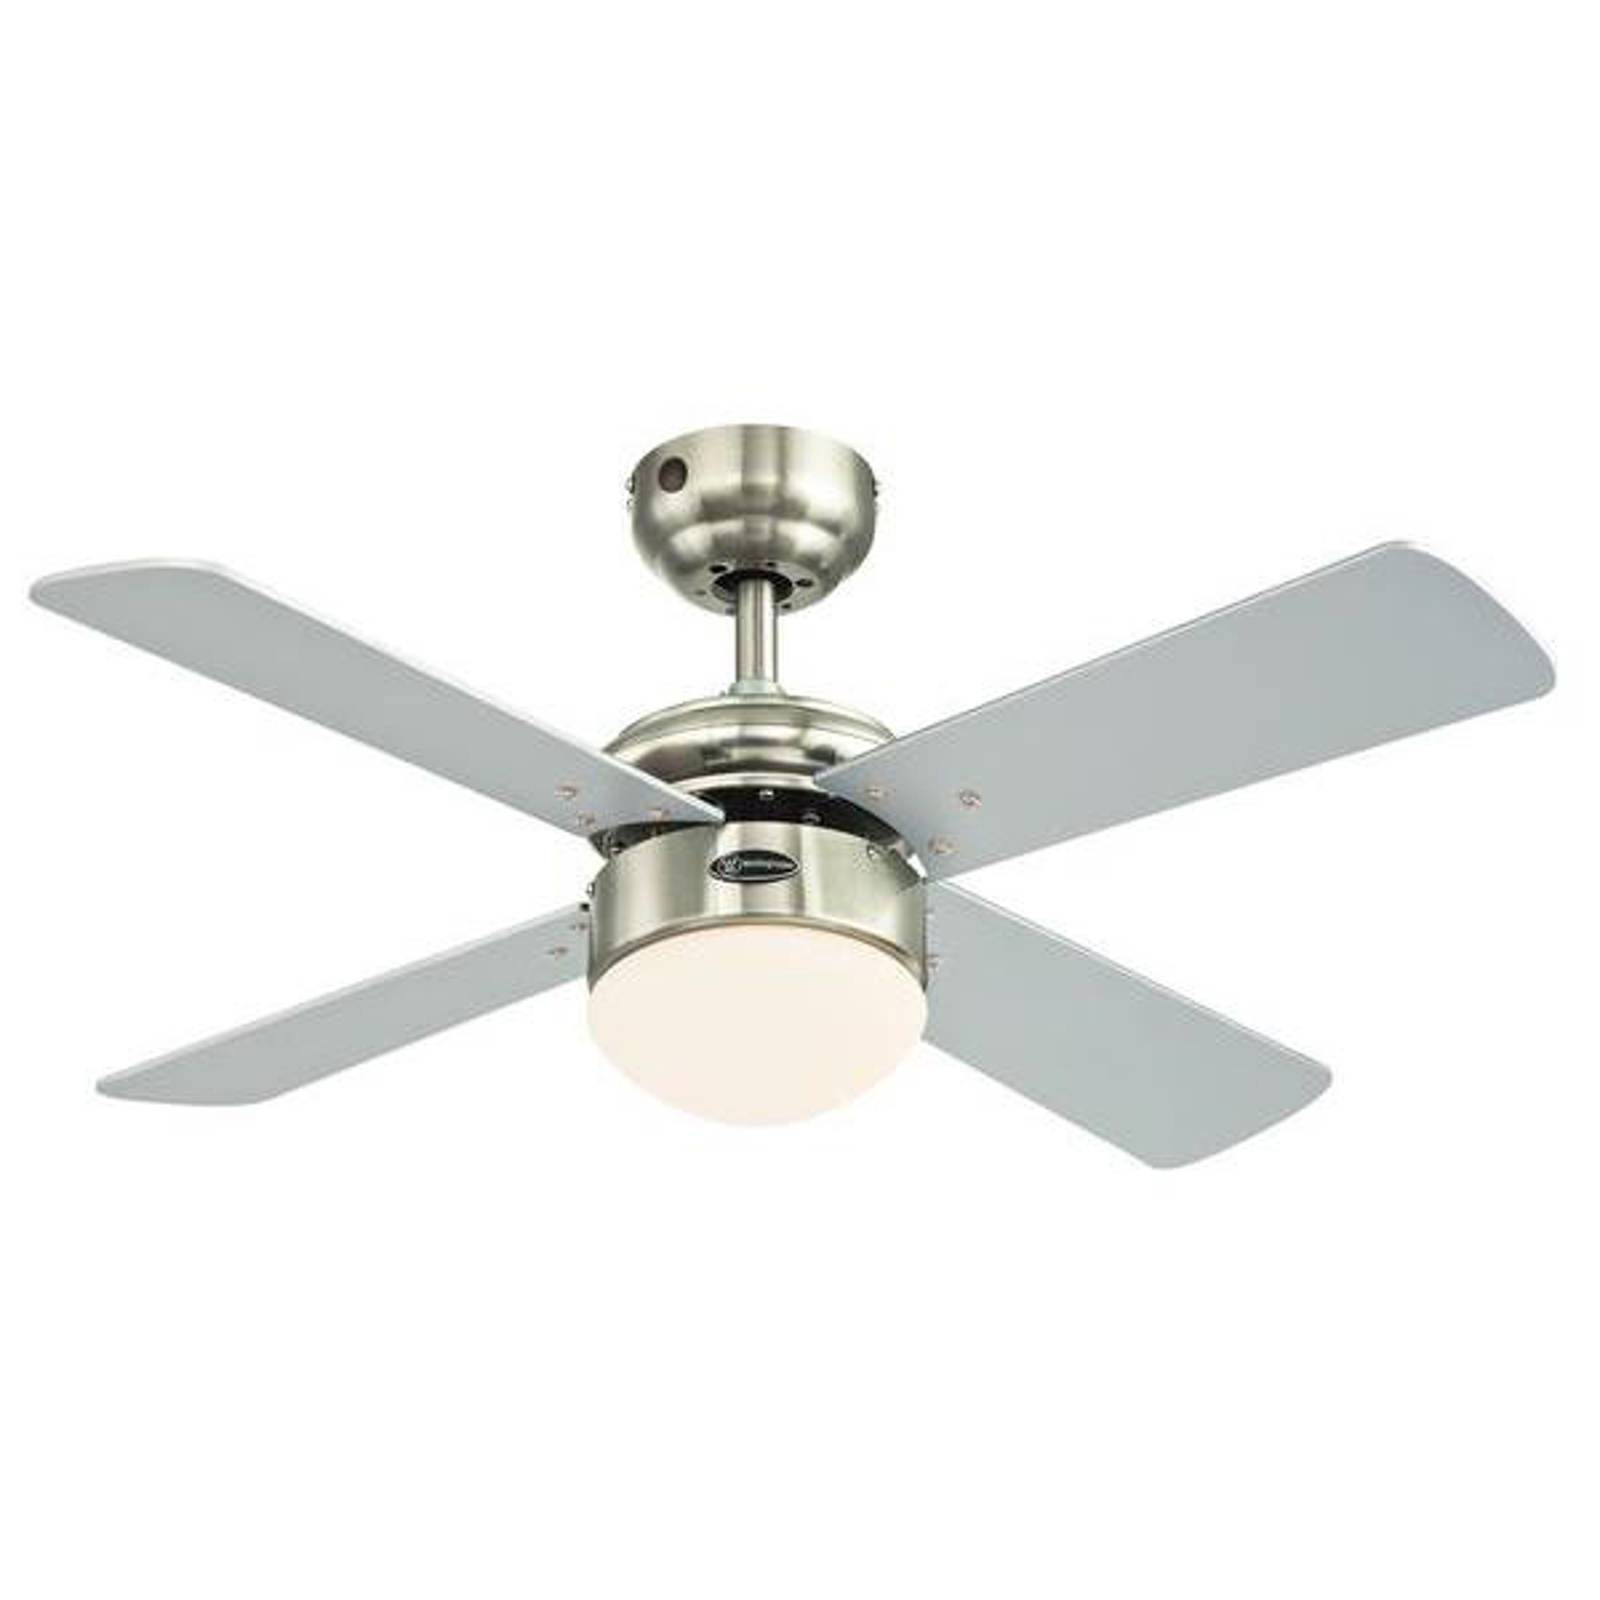 Ceiling fan Colosseum with LED light from Westinghouse